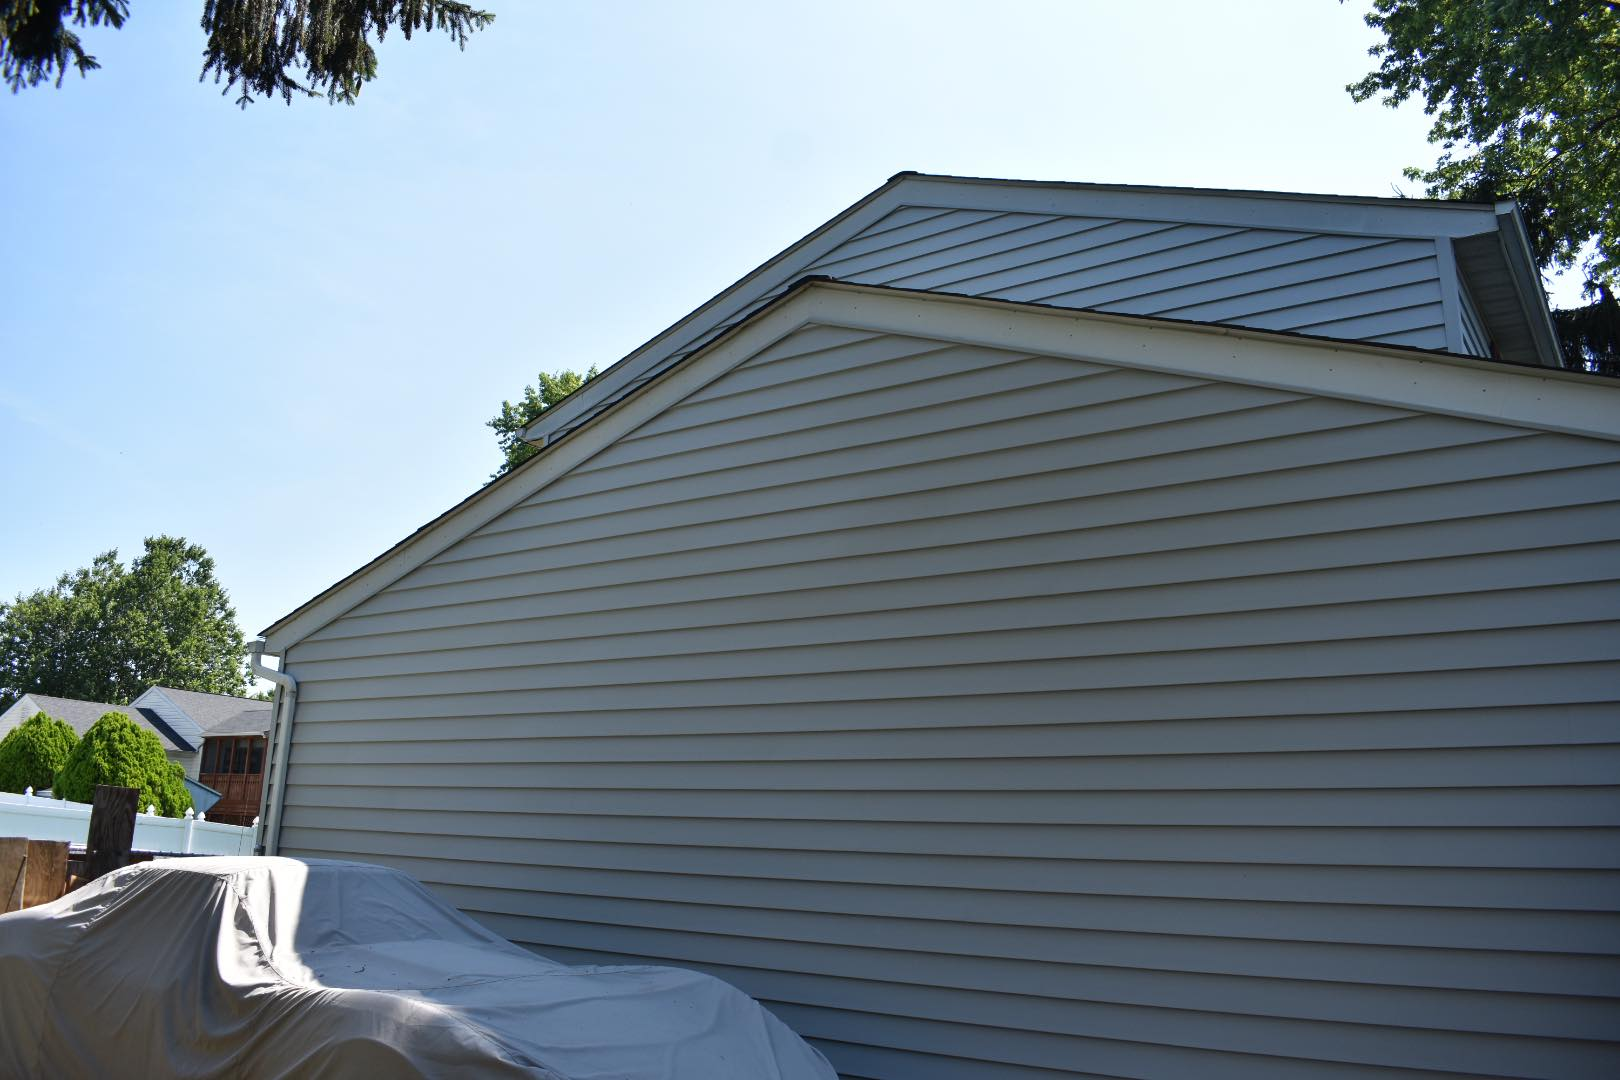 Siding covers the entirety of a home - insulating it throughout guarantees savings on your energy bill!